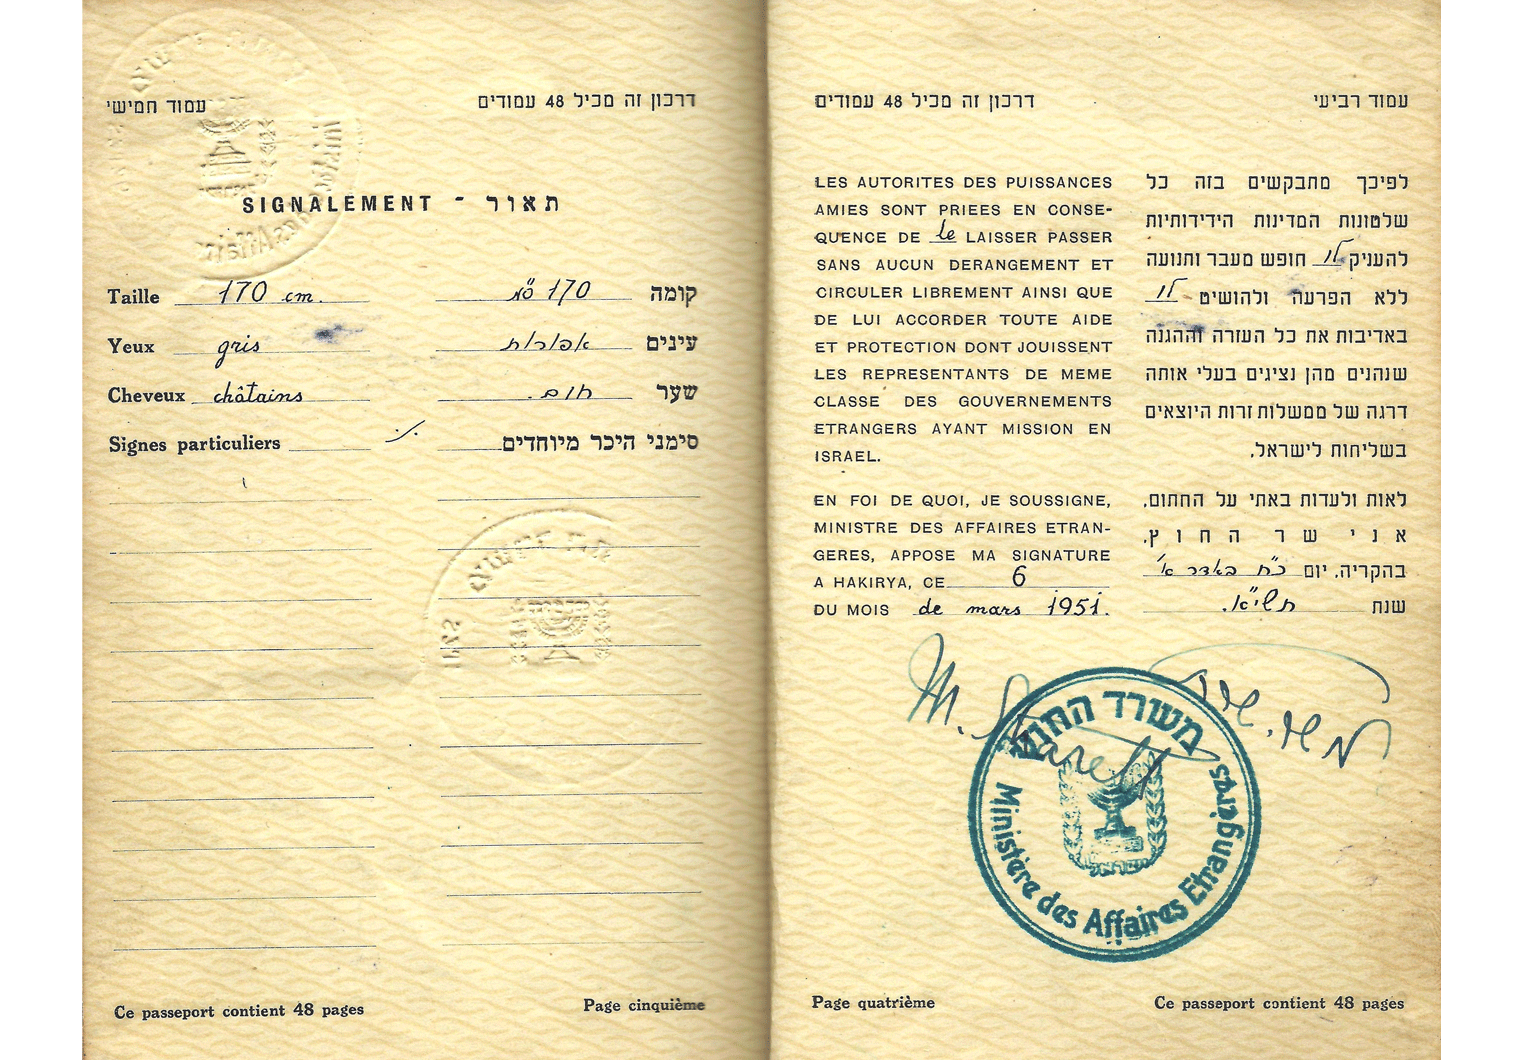 early Israeli Diplomatic passport